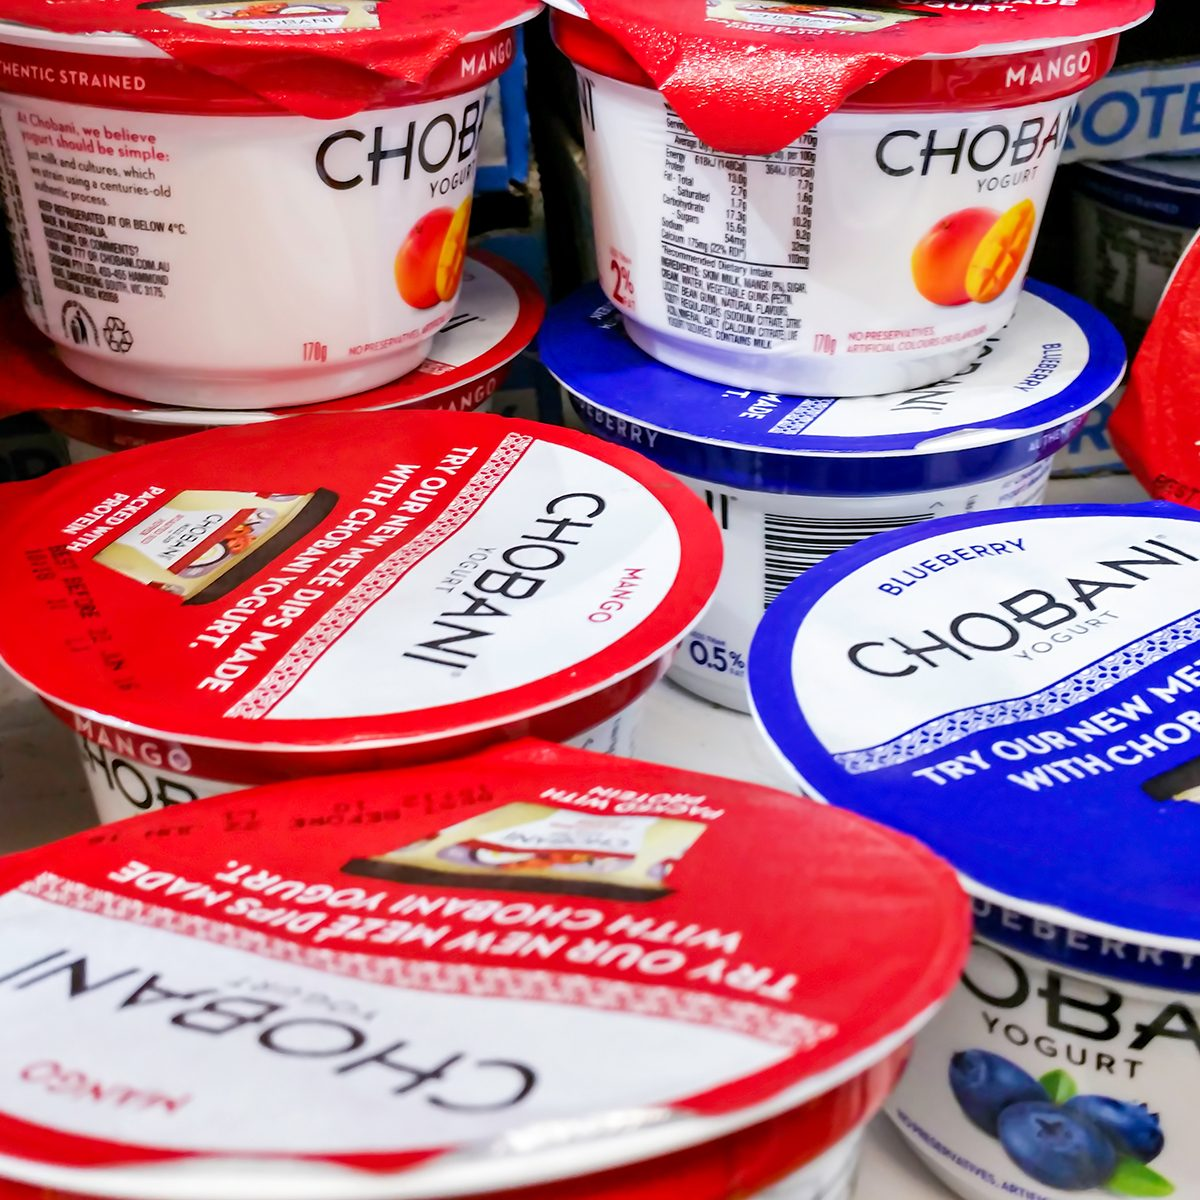 Individual tubs of Chobani brand yogurt on display in a refrigerator for sale in a local supermarket.